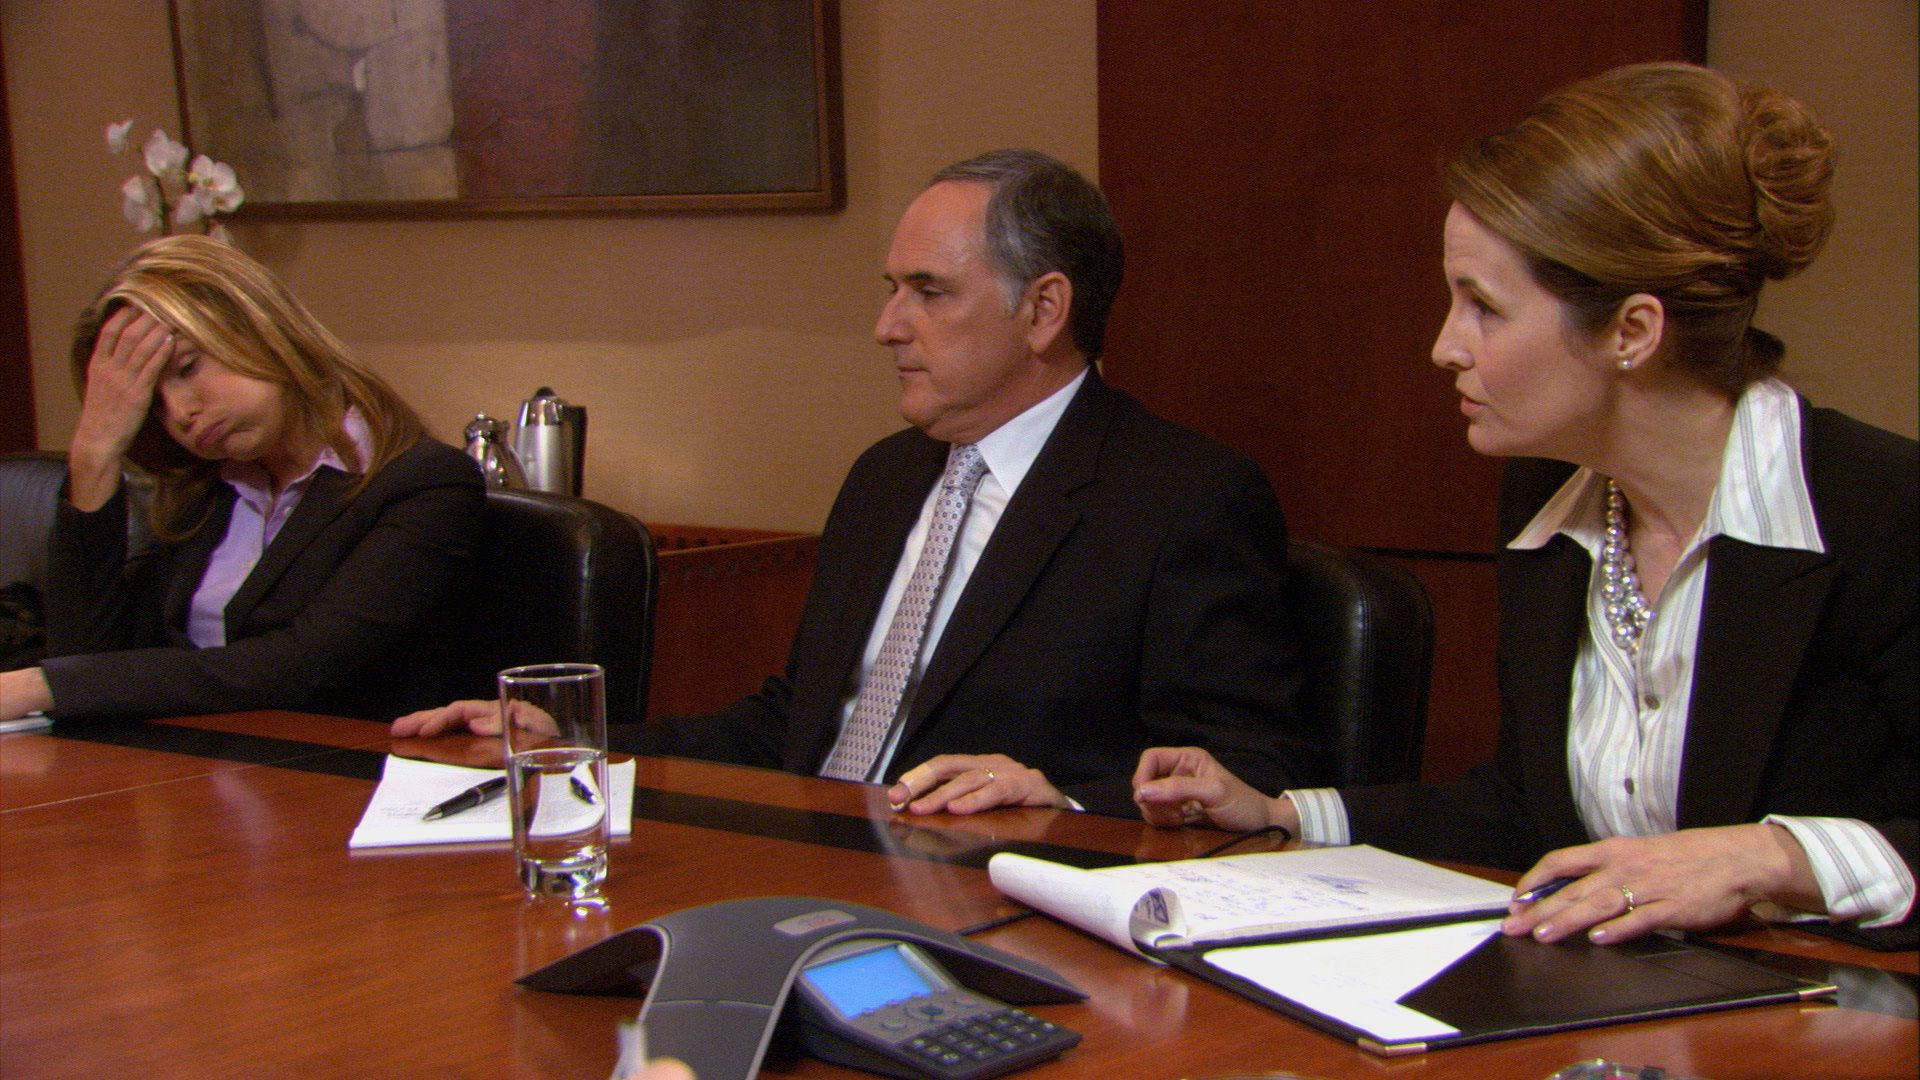 The office season 4 ep 12 the deposition full episode comedy central - The office episodes season 4 ...